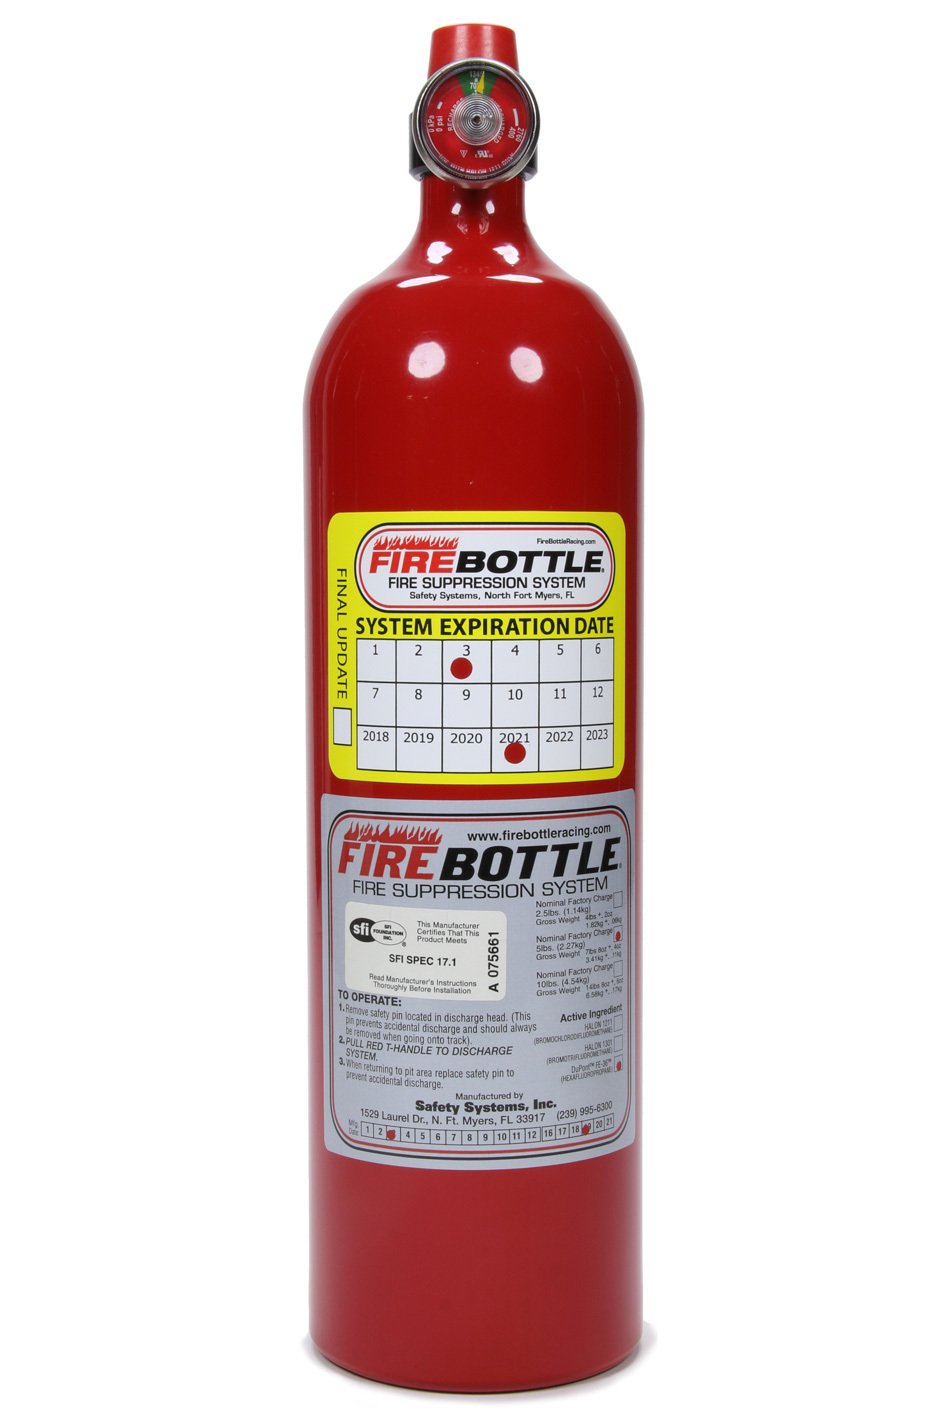 Safety Systems PRC-500S Fire Suppression System Bottle, RC, Manual, FE-36, 5.0 lb Bottle, Kit